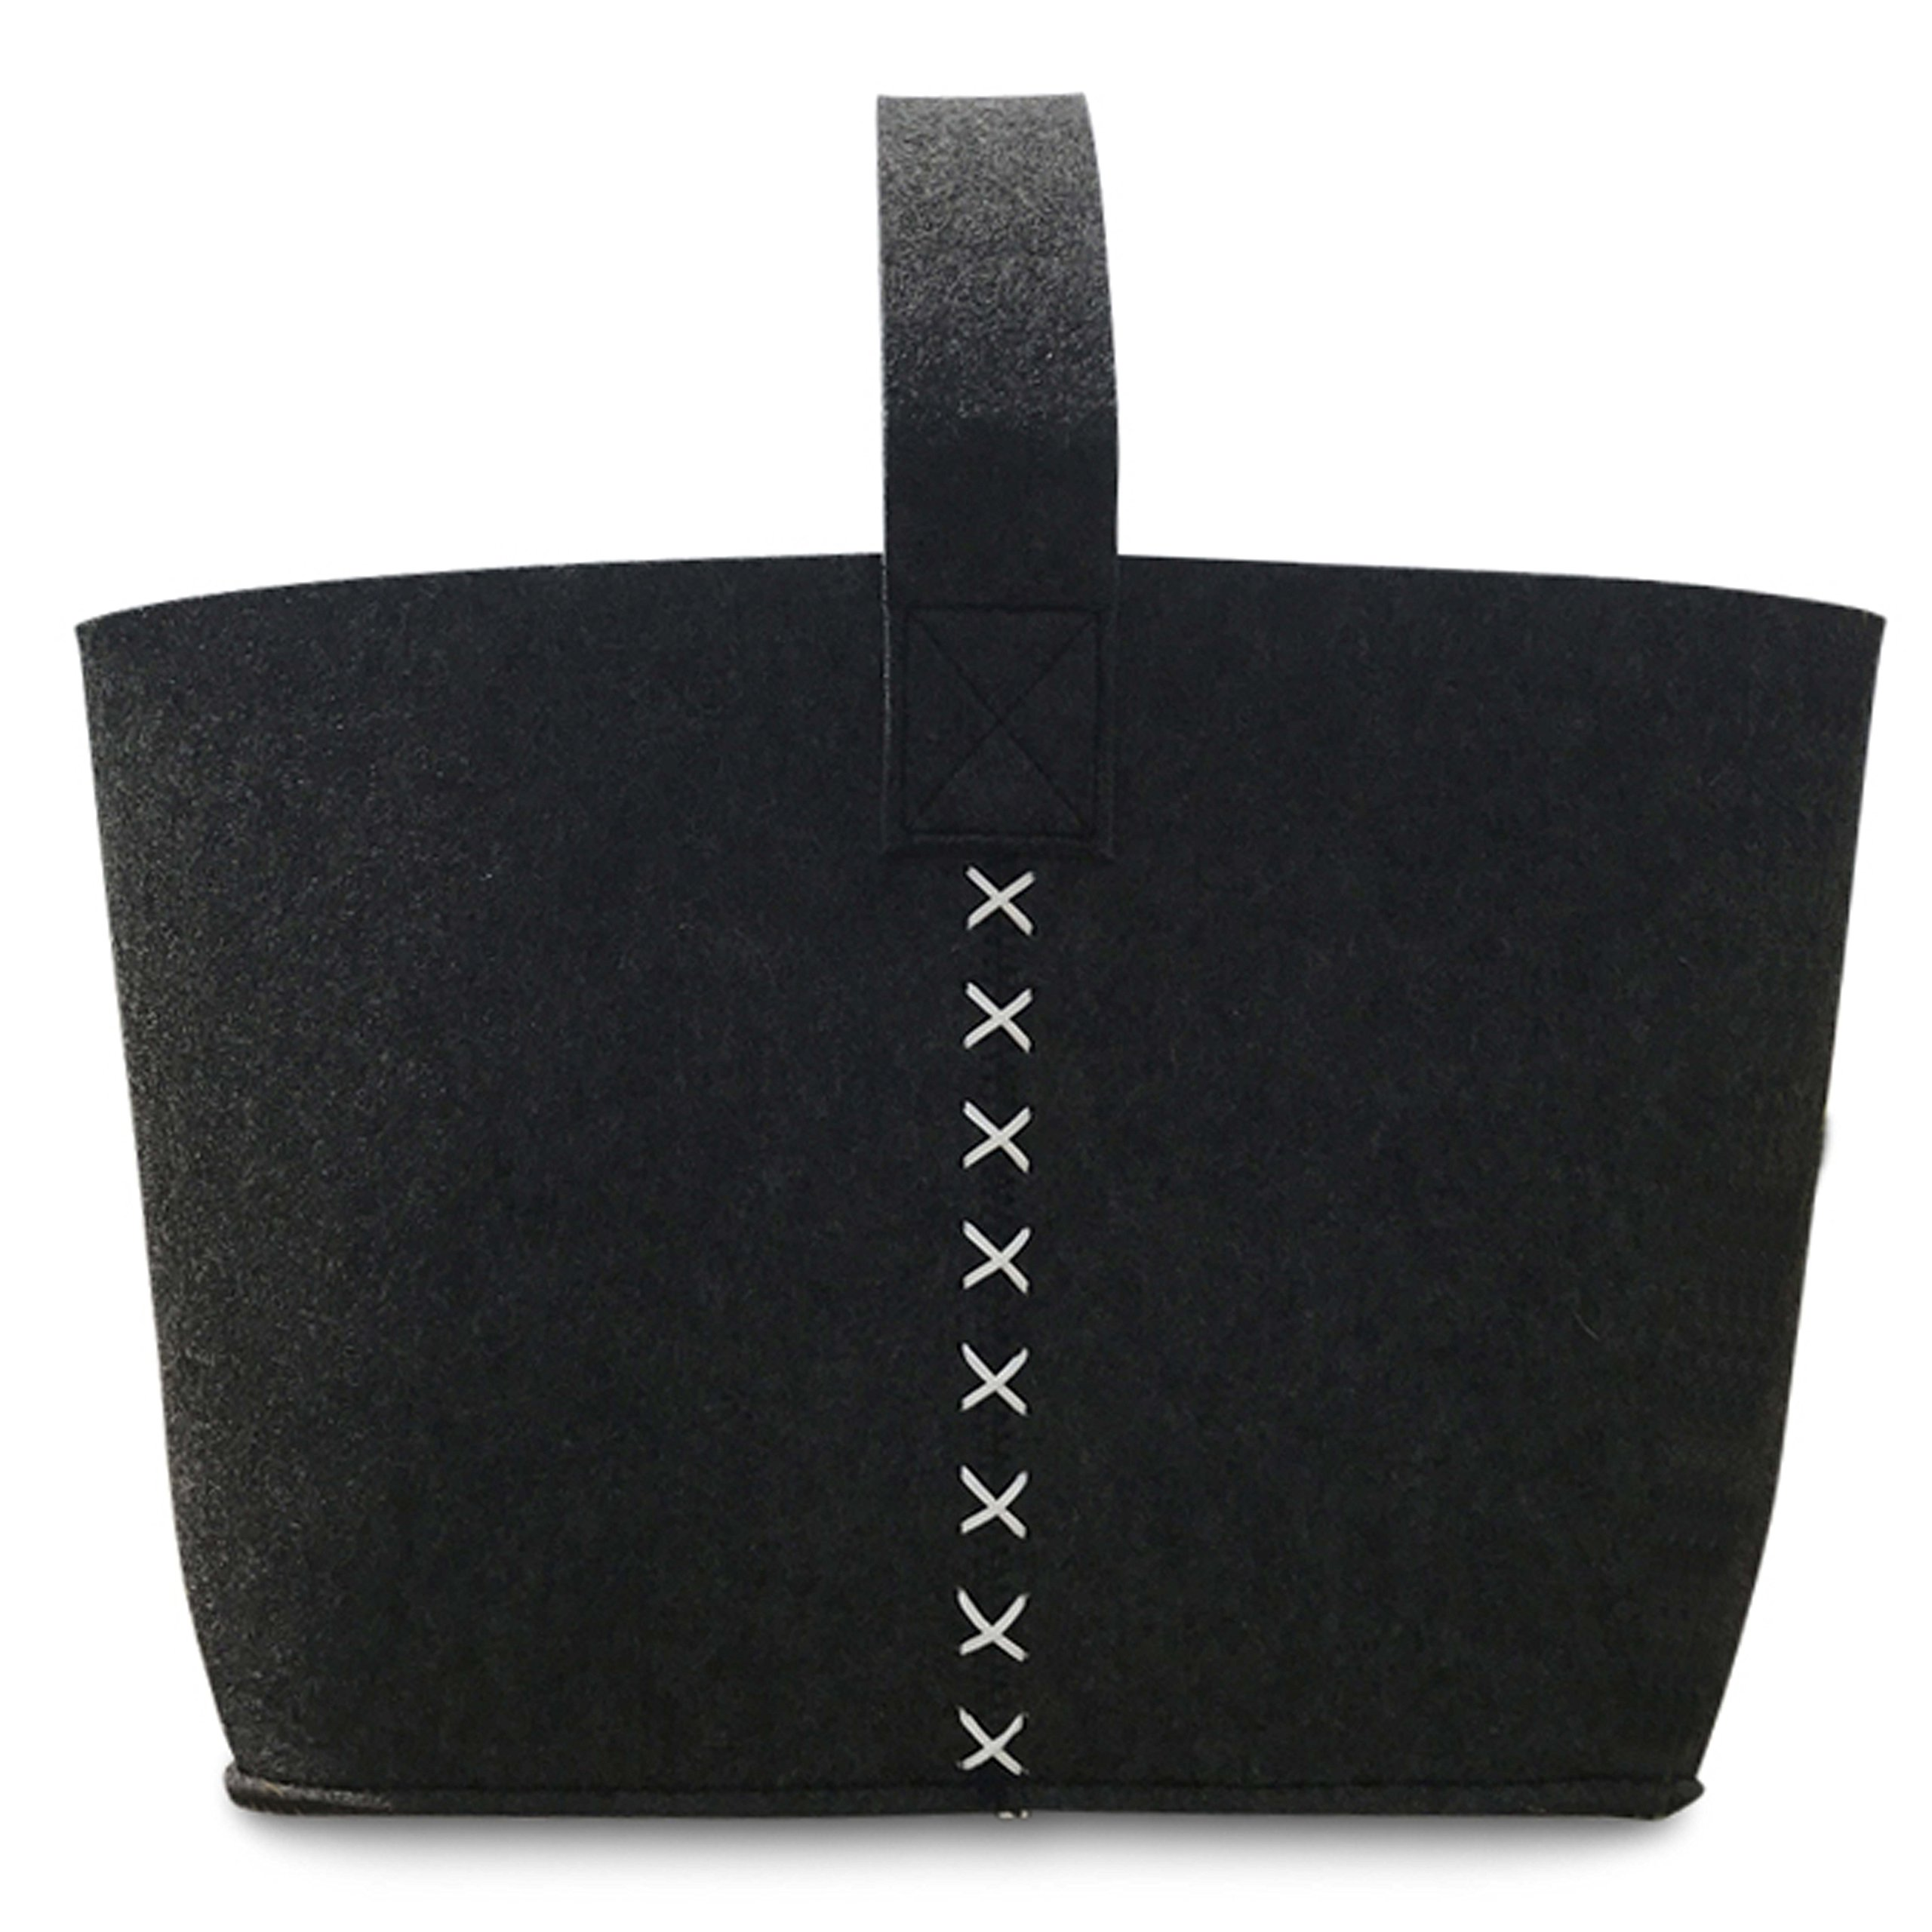 Whole House Worlds The Felt Boat Bag, Tote, In Charcoal, Super Soft, Thick, and Durable Polyester, Faux Leather White Stitched Details, 19 3/4 Inches Tall, By